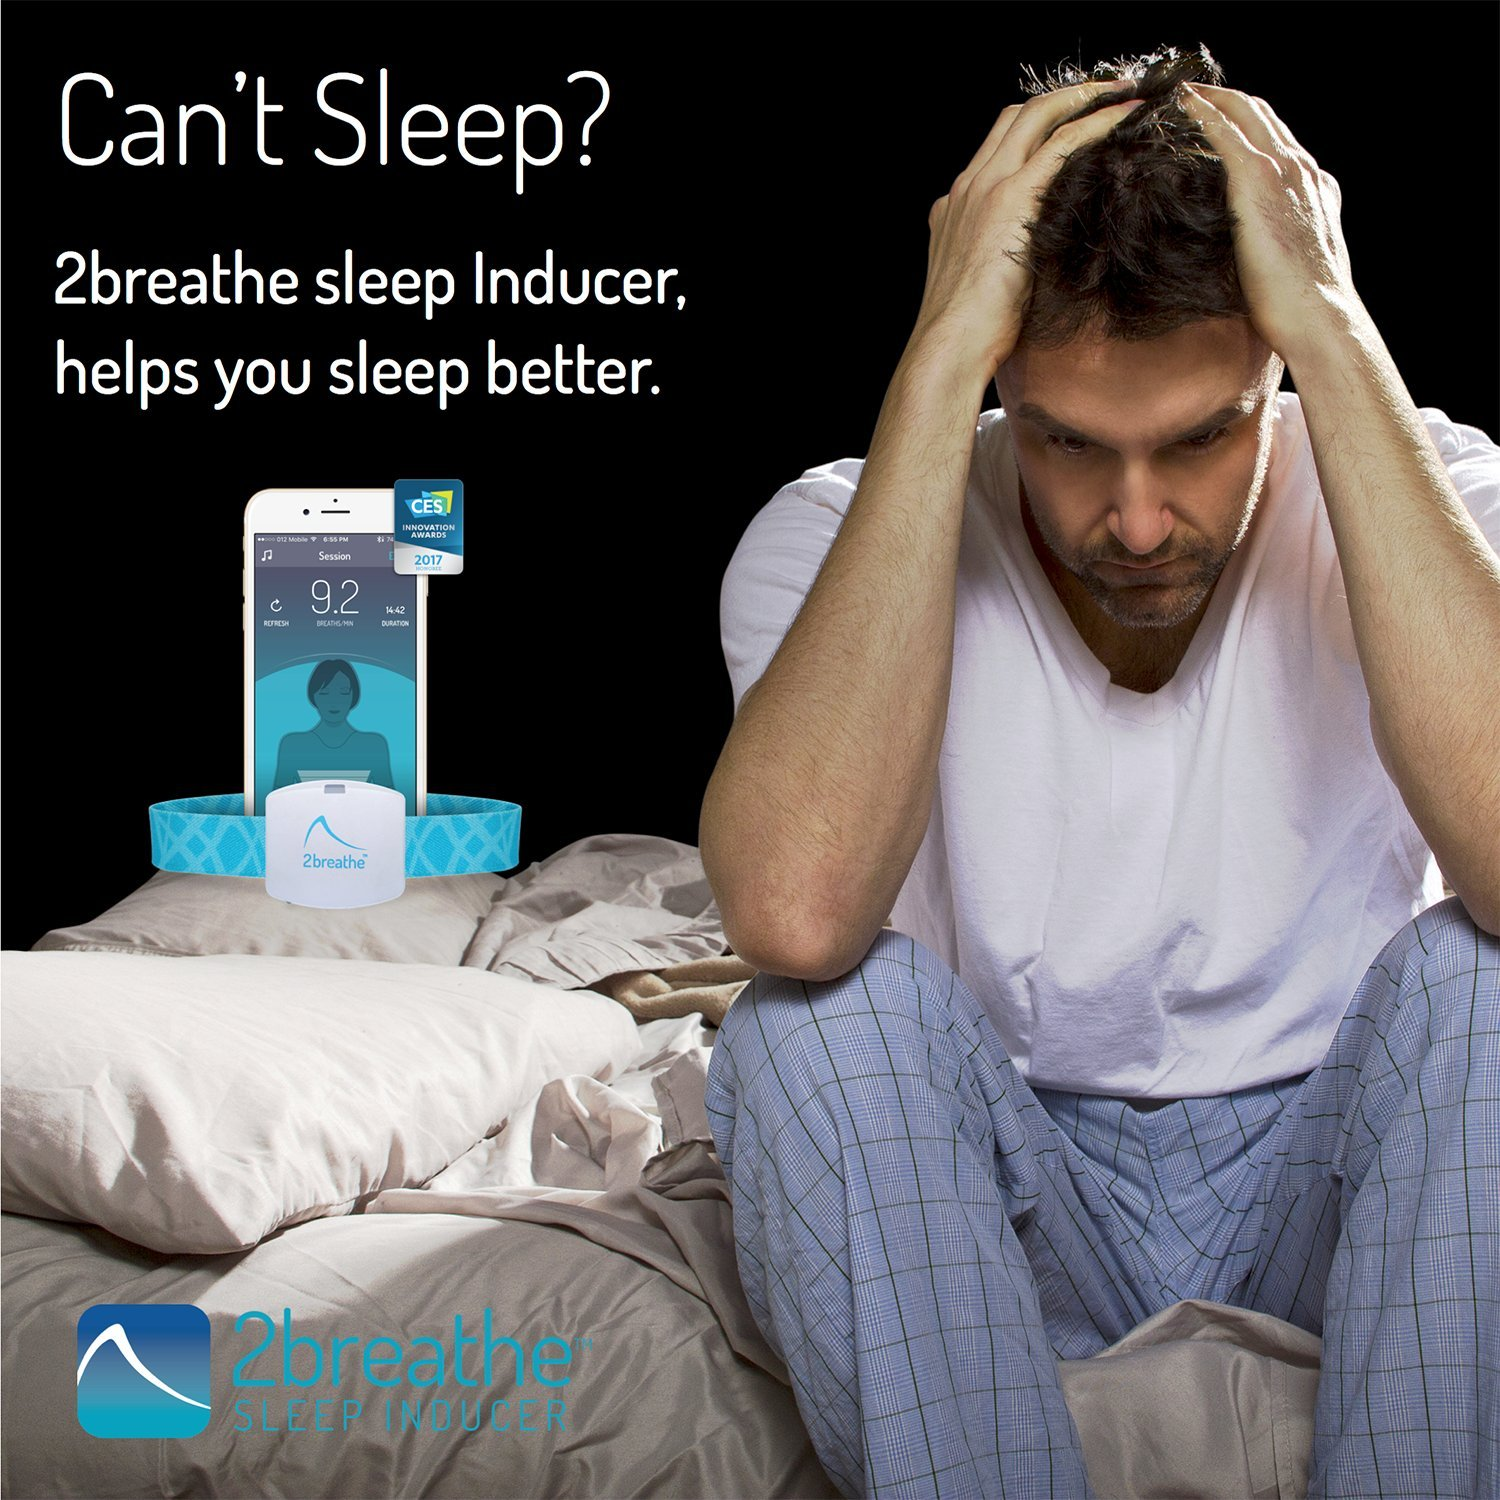 2breathe Sleep Inducer - Sleep Sound System. Smart Device and Mobile App to Induce Sleep. Guides You to Slow Breathing with Prolonged Exhalation using Sounds. Natural Sleep Therapy Machine by RESPeRATE (Image #3)